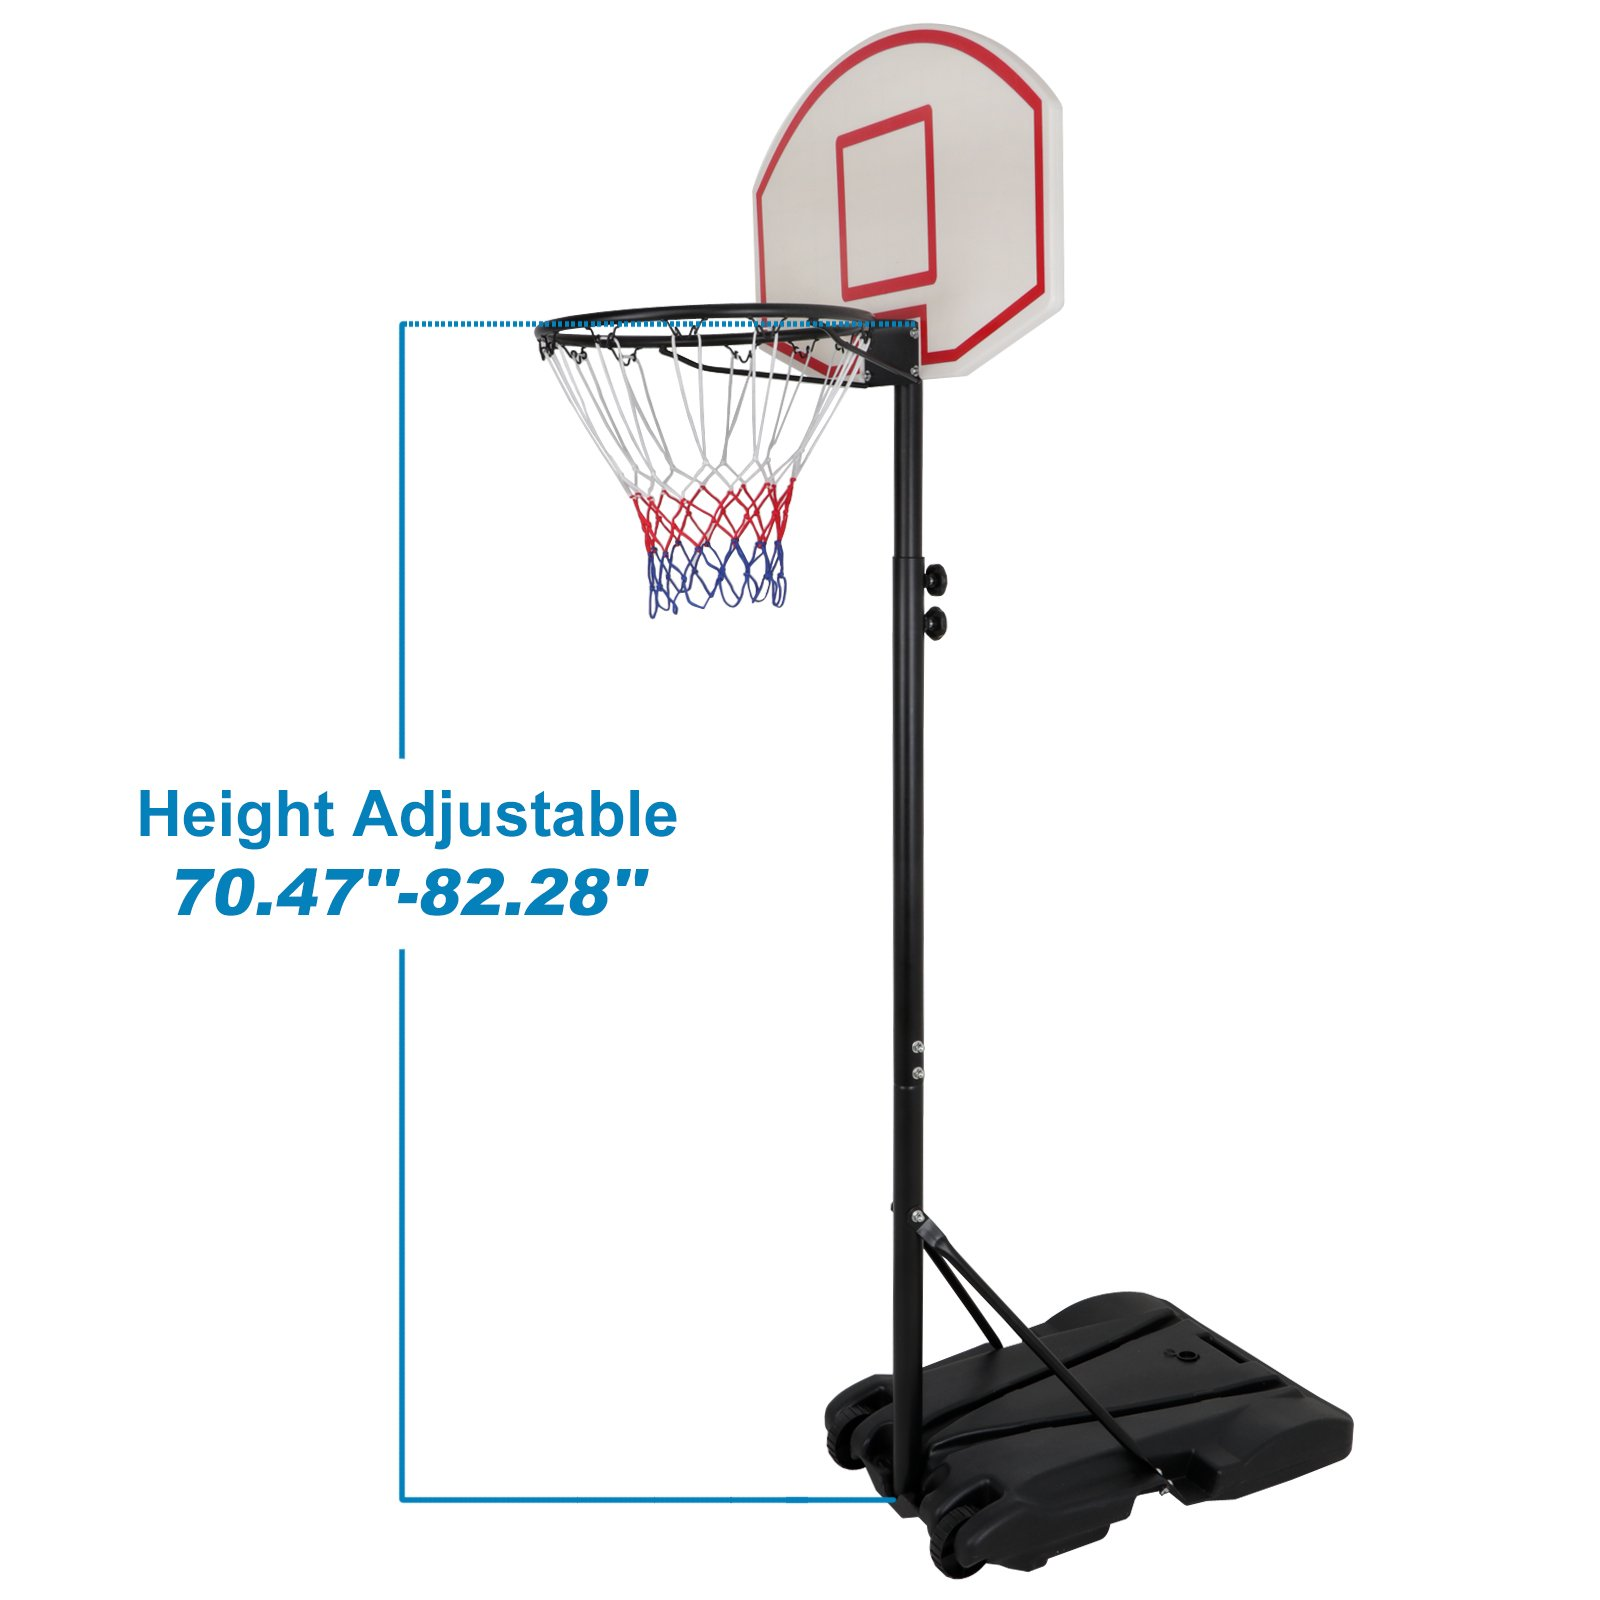 Smartxchoices Portable Height-Adjustable Basketball Hoop Stand Goal System Steel Pole with Backboard and Wheels for Kids Teenagers Youth Indoor Outdoor by Smartxchoices (Image #2)